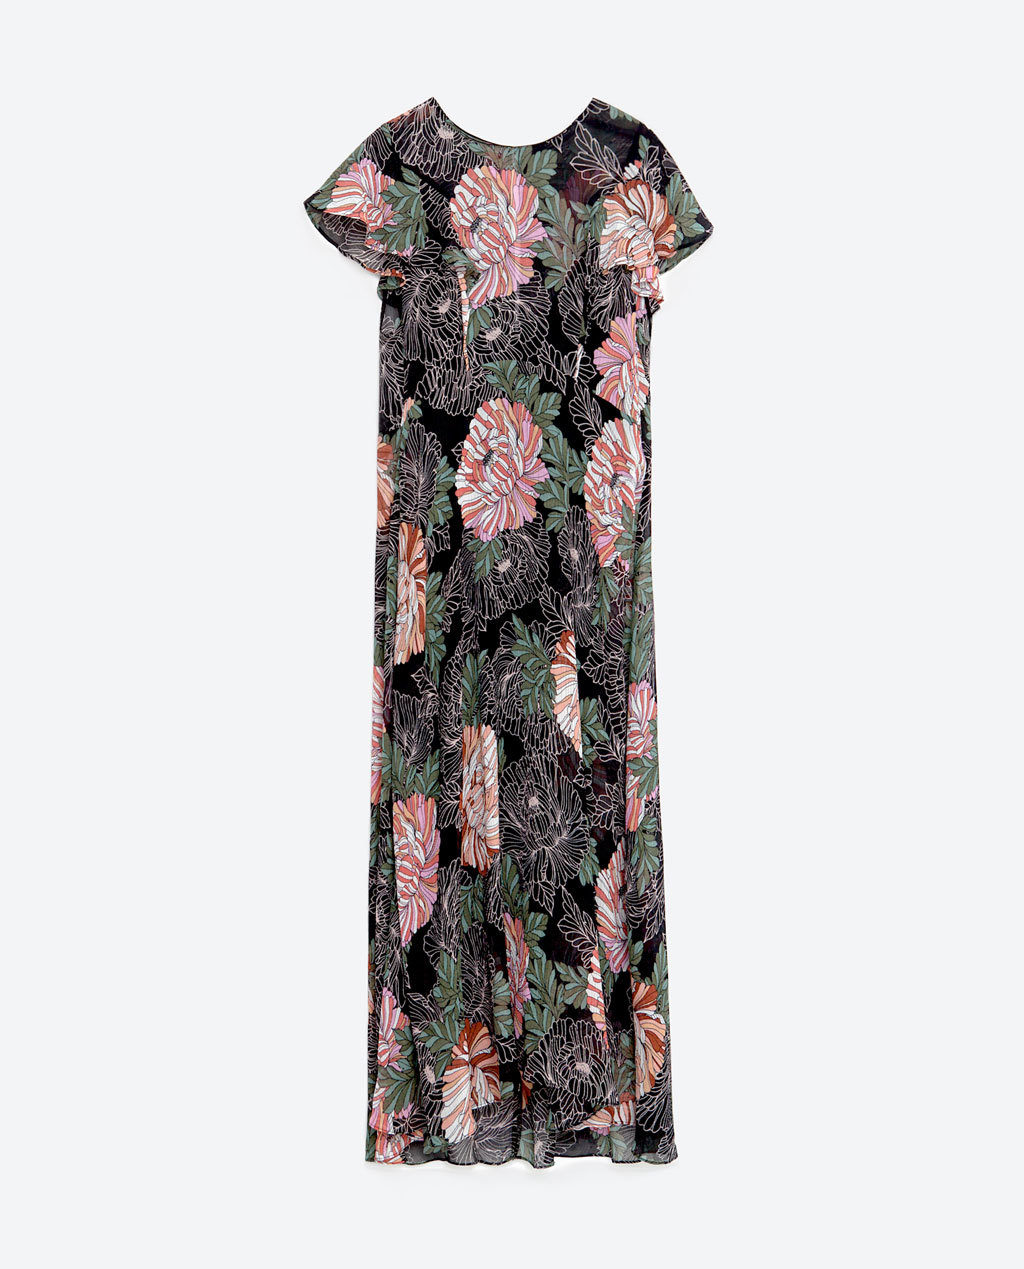 Printed Dress With Frills - length: calf length; secondary colour: pink; predominant colour: black; occasions: casual; fit: fitted at waist & bust; style: fit & flare; neckline: crew; sleeve length: short sleeve; sleeve style: standard; pattern type: fabric; pattern: florals; texture group: jersey - stretchy/drapey; fibres: viscose/rayon - mix; multicoloured: multicoloured; season: s/s 2016; wardrobe: highlight